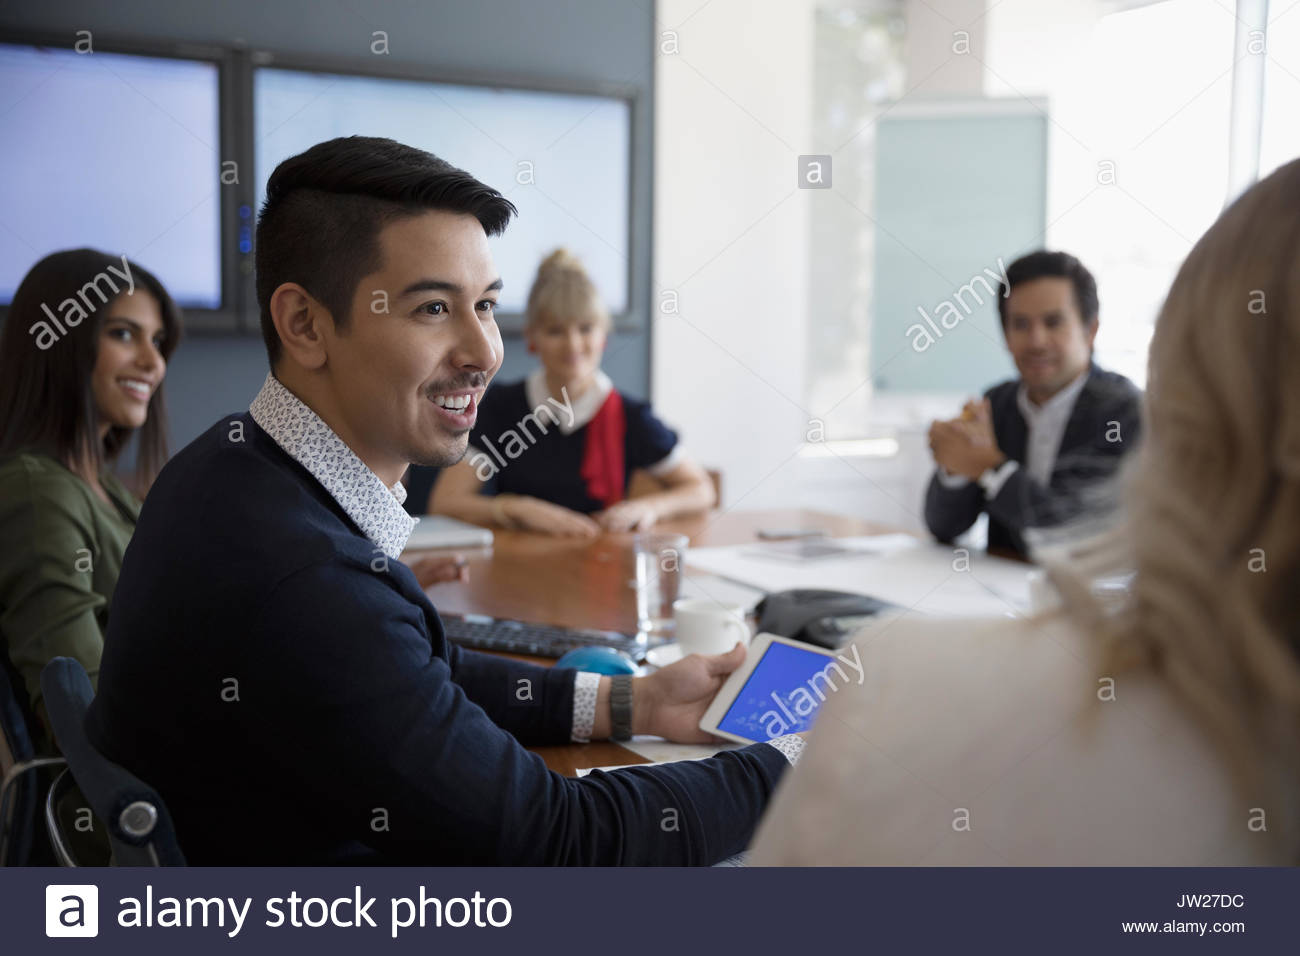 Smiling businessman talking to coworker in conference room meeting - Stock Image